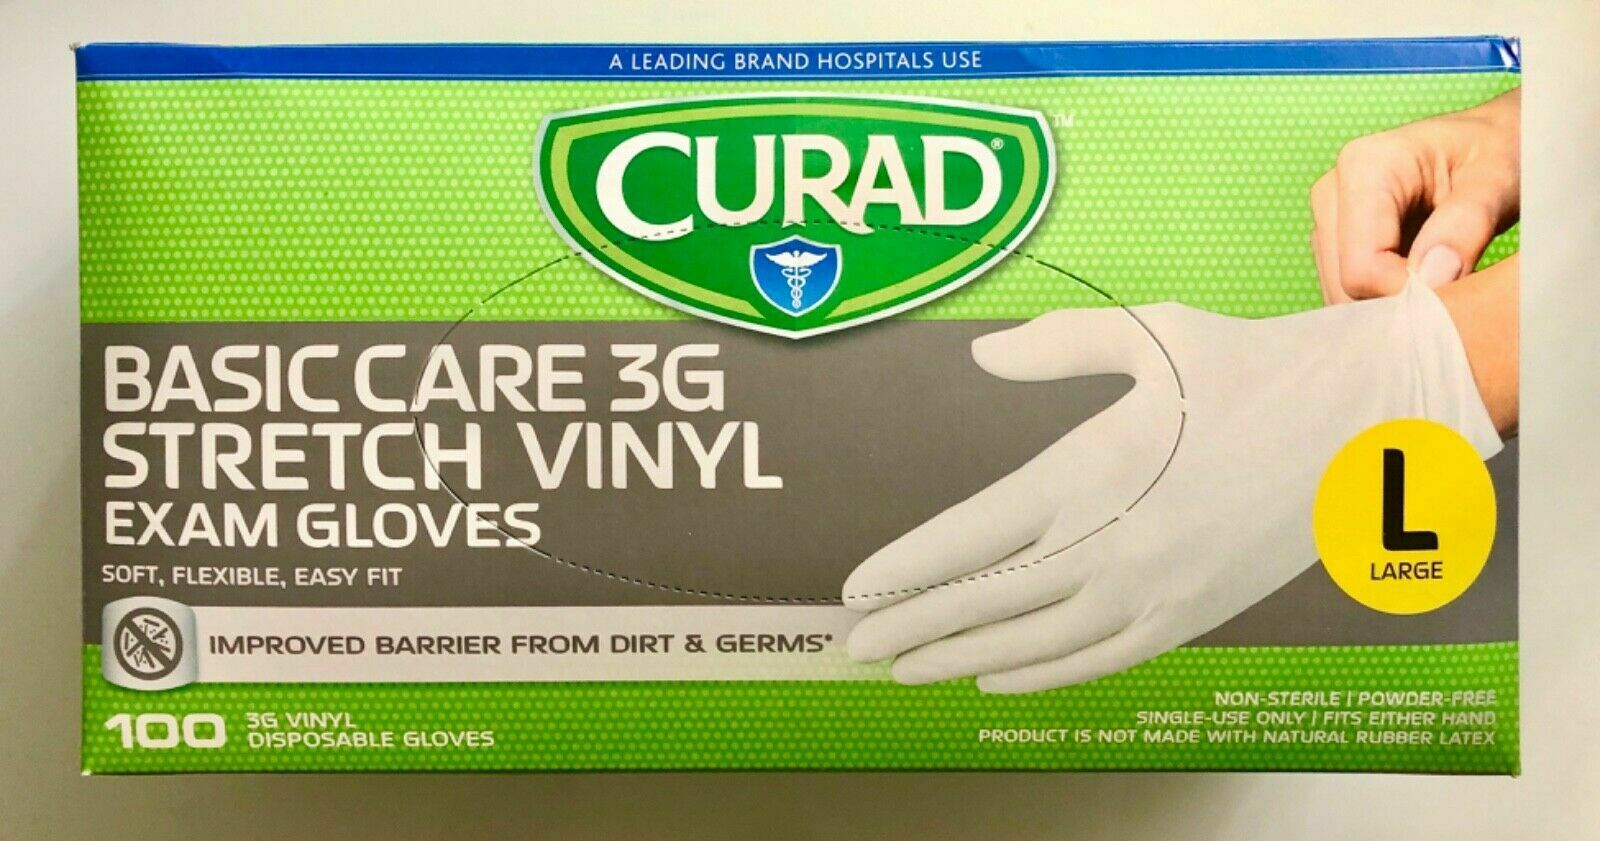 100 Curad Basic Care 3G Stretch Vinyl Exam Gloves Size Lage - $22.98